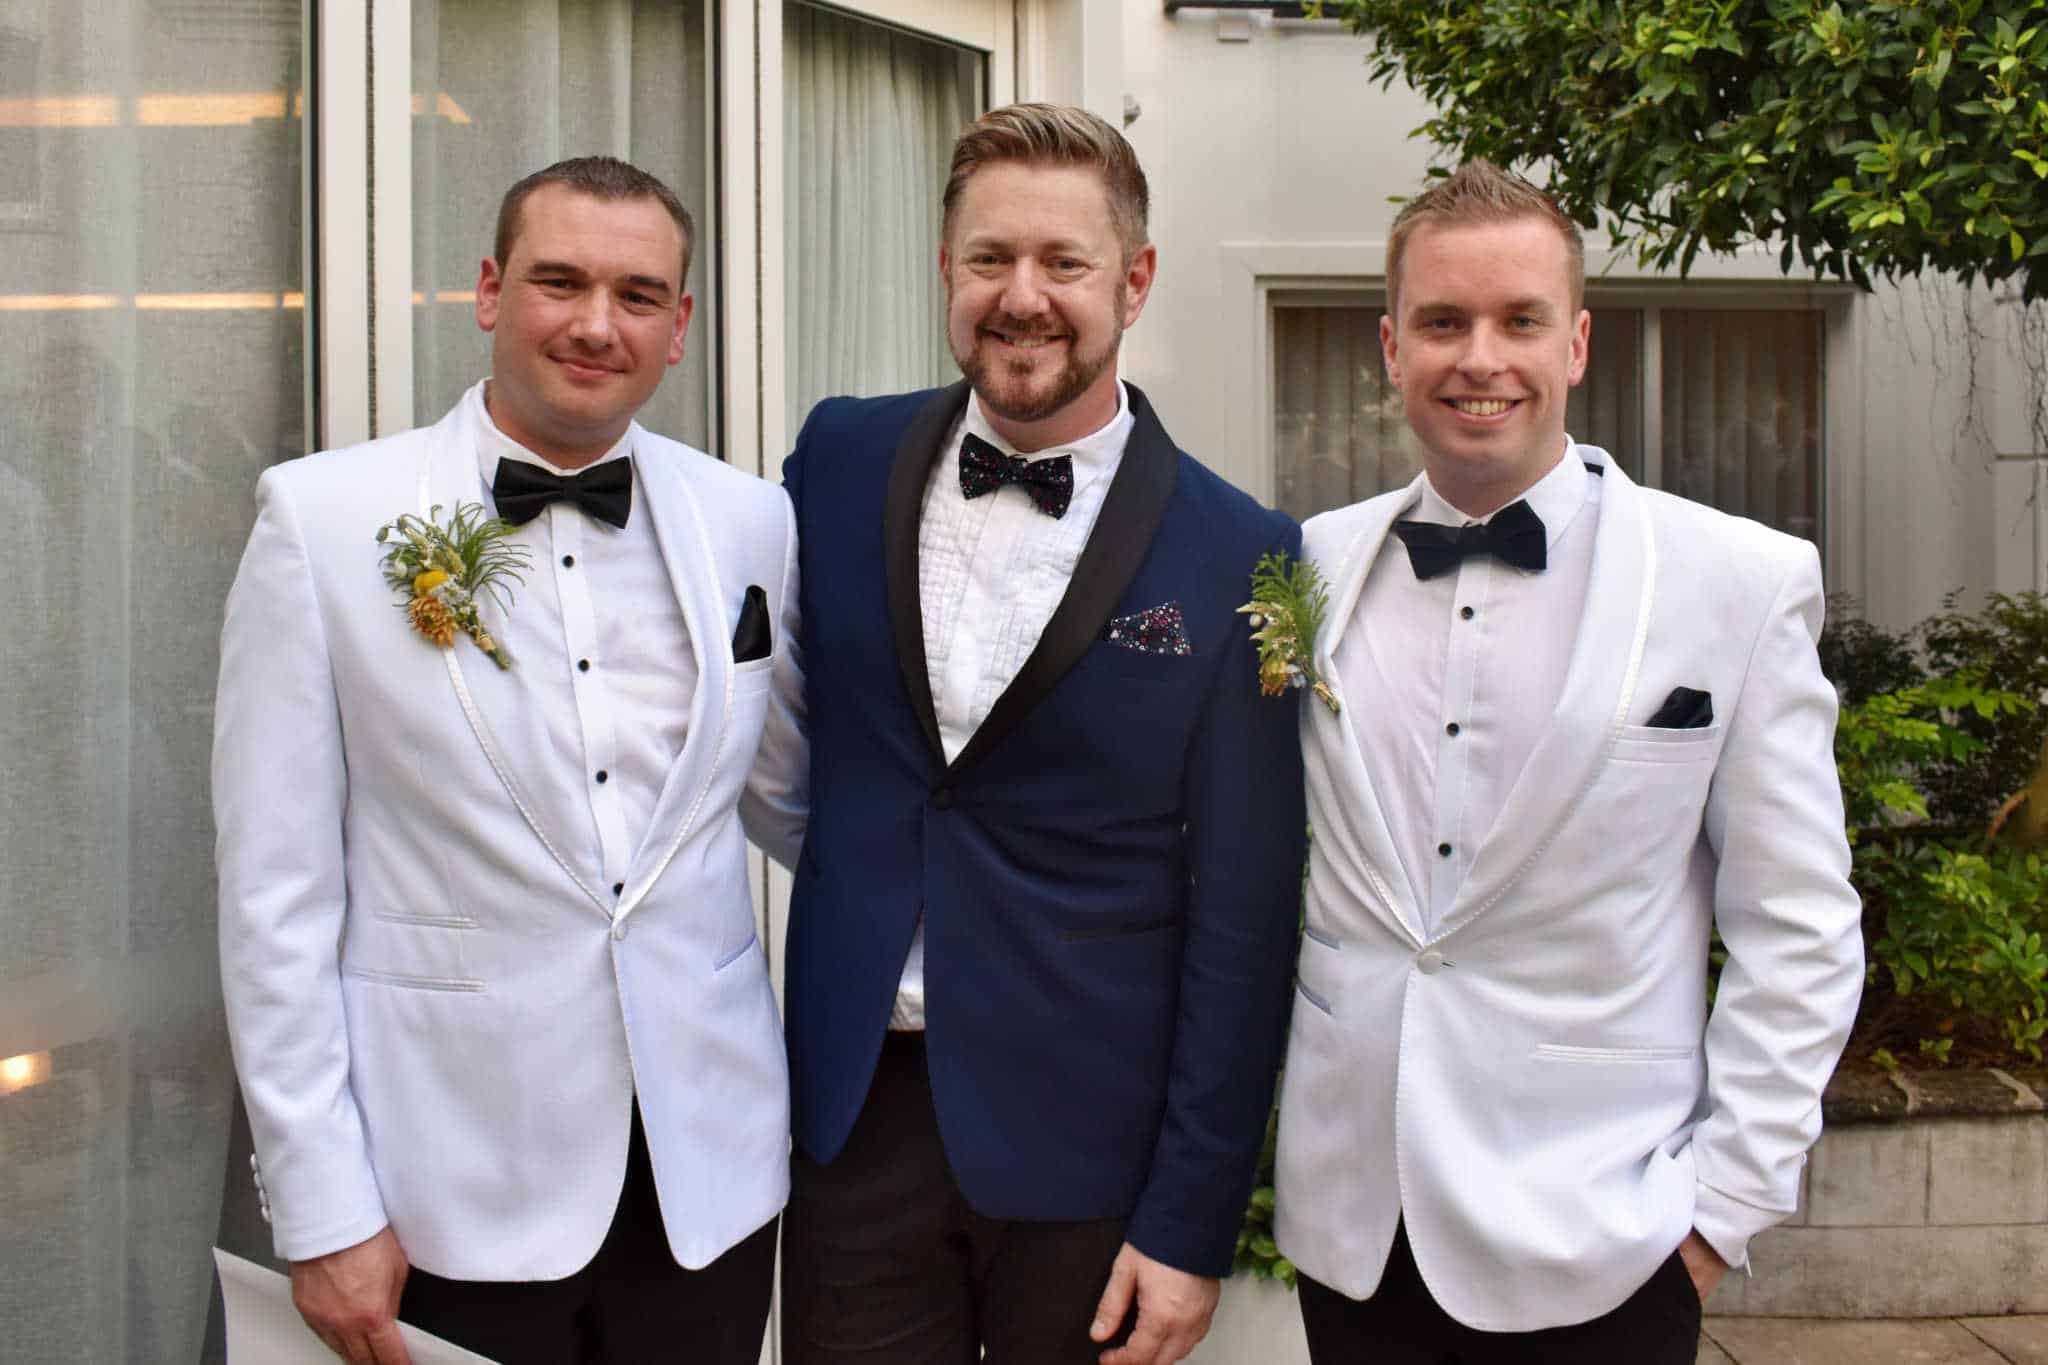 Nathan and Mark Wedding - Sydney Marriage Celebrant Stephen Lee